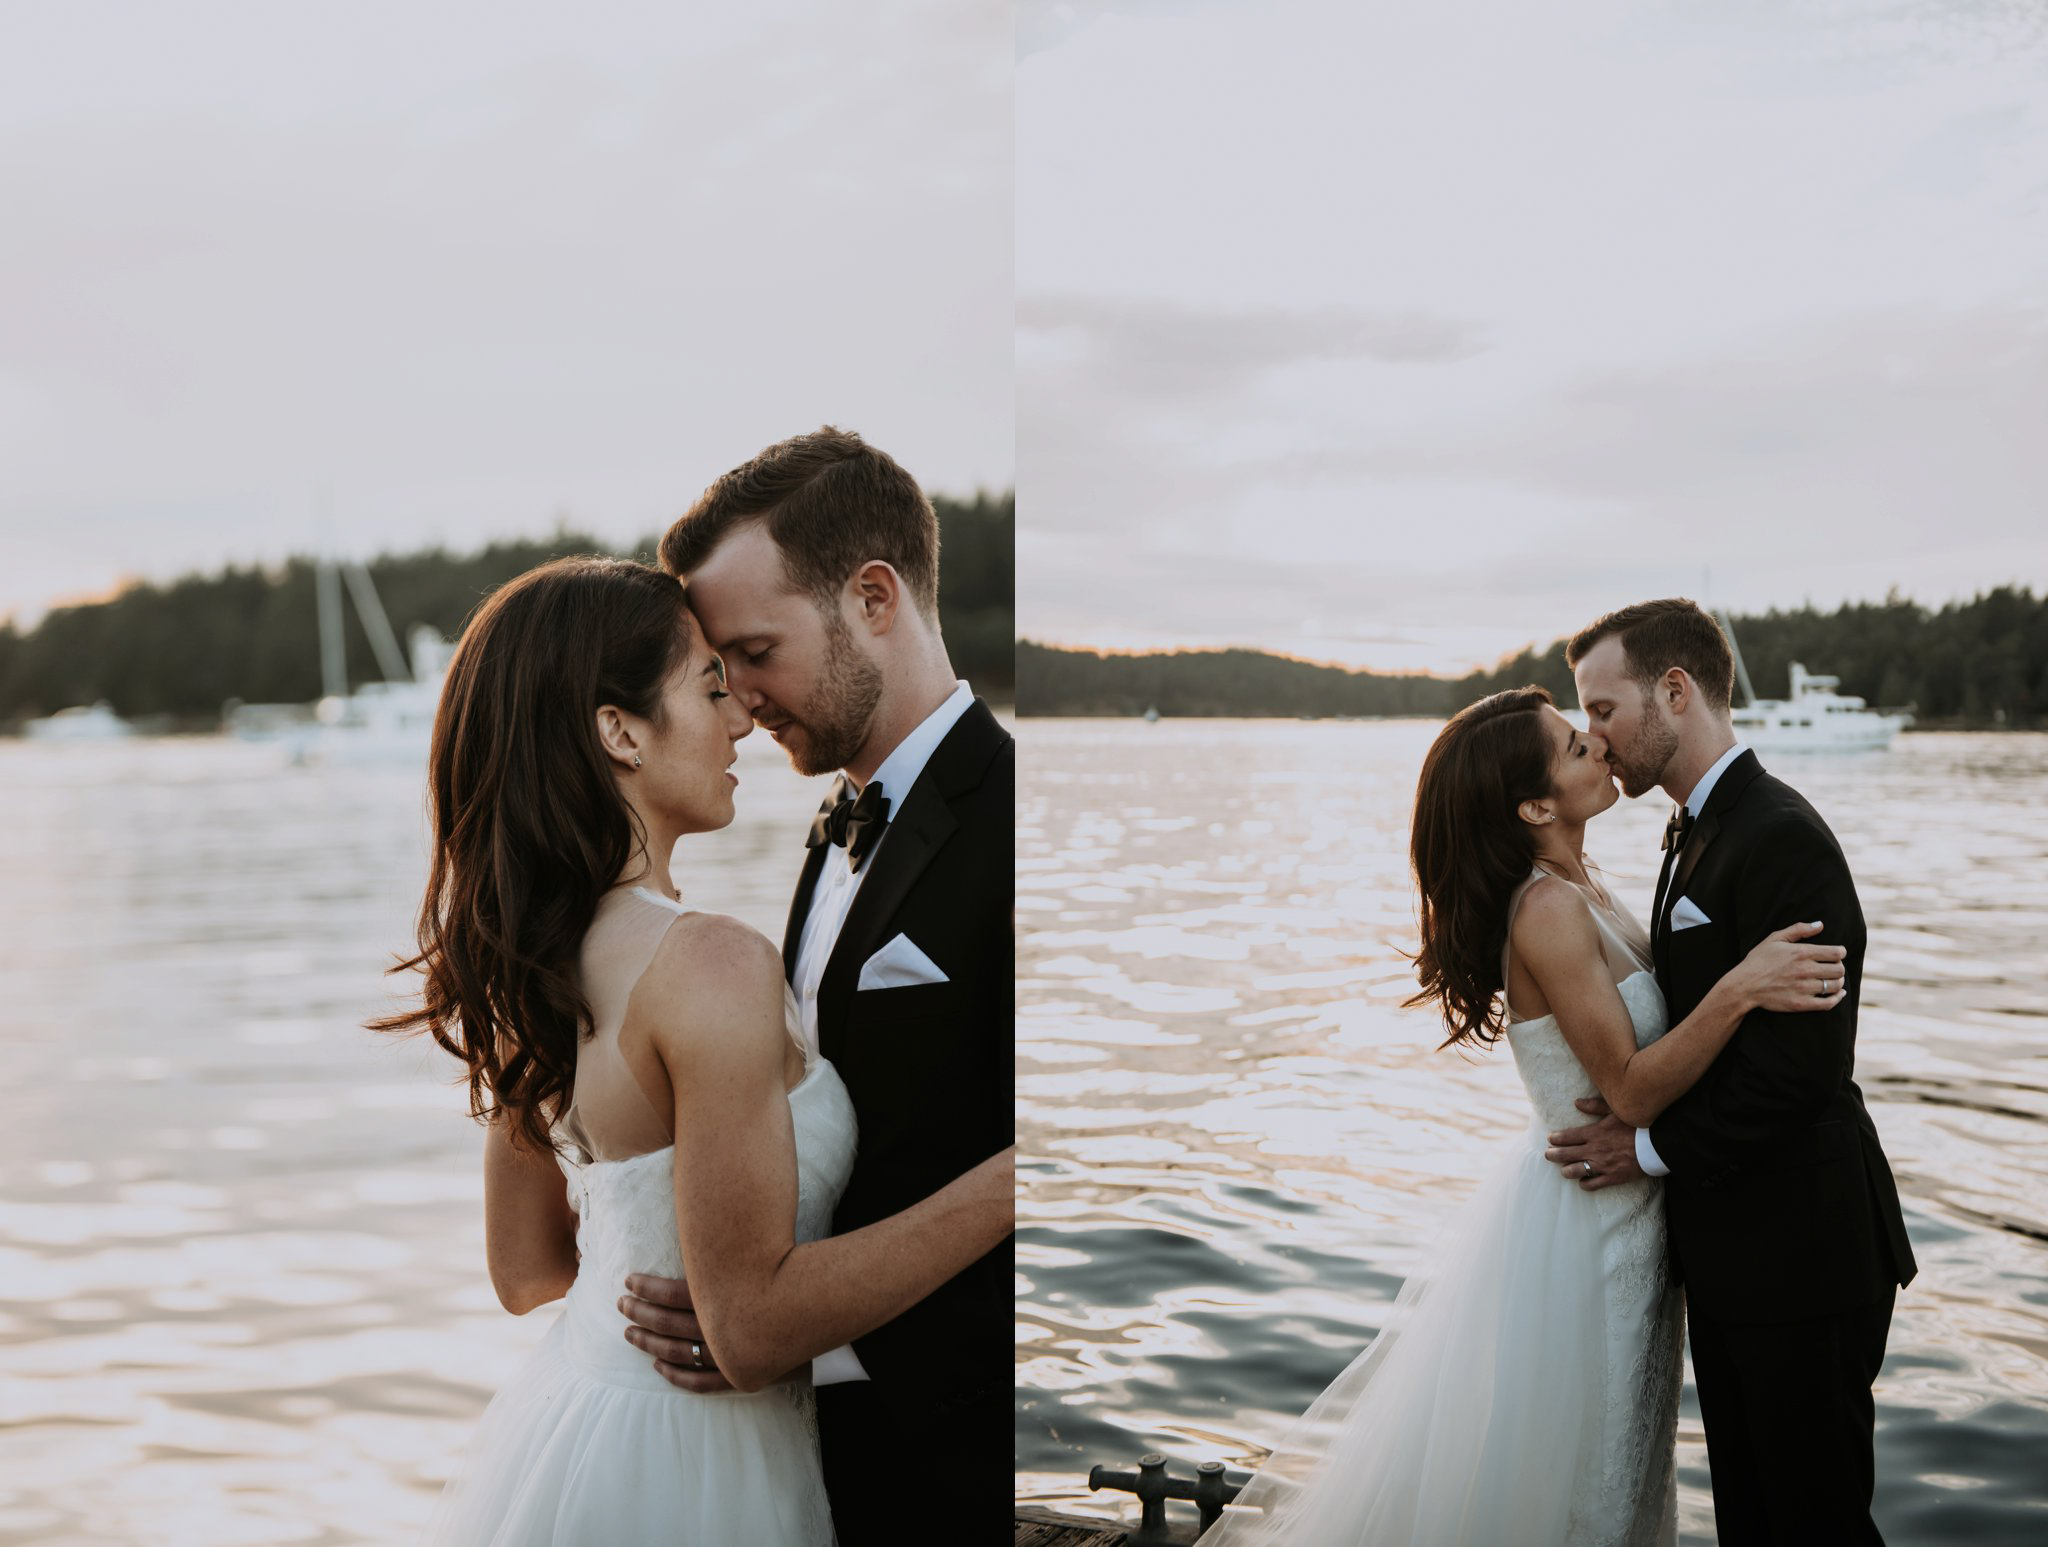 roche-harbor-resort-sand-juan-island-wedding-seattle-wedding-photograher-caitlyn-nikula-136.jpg